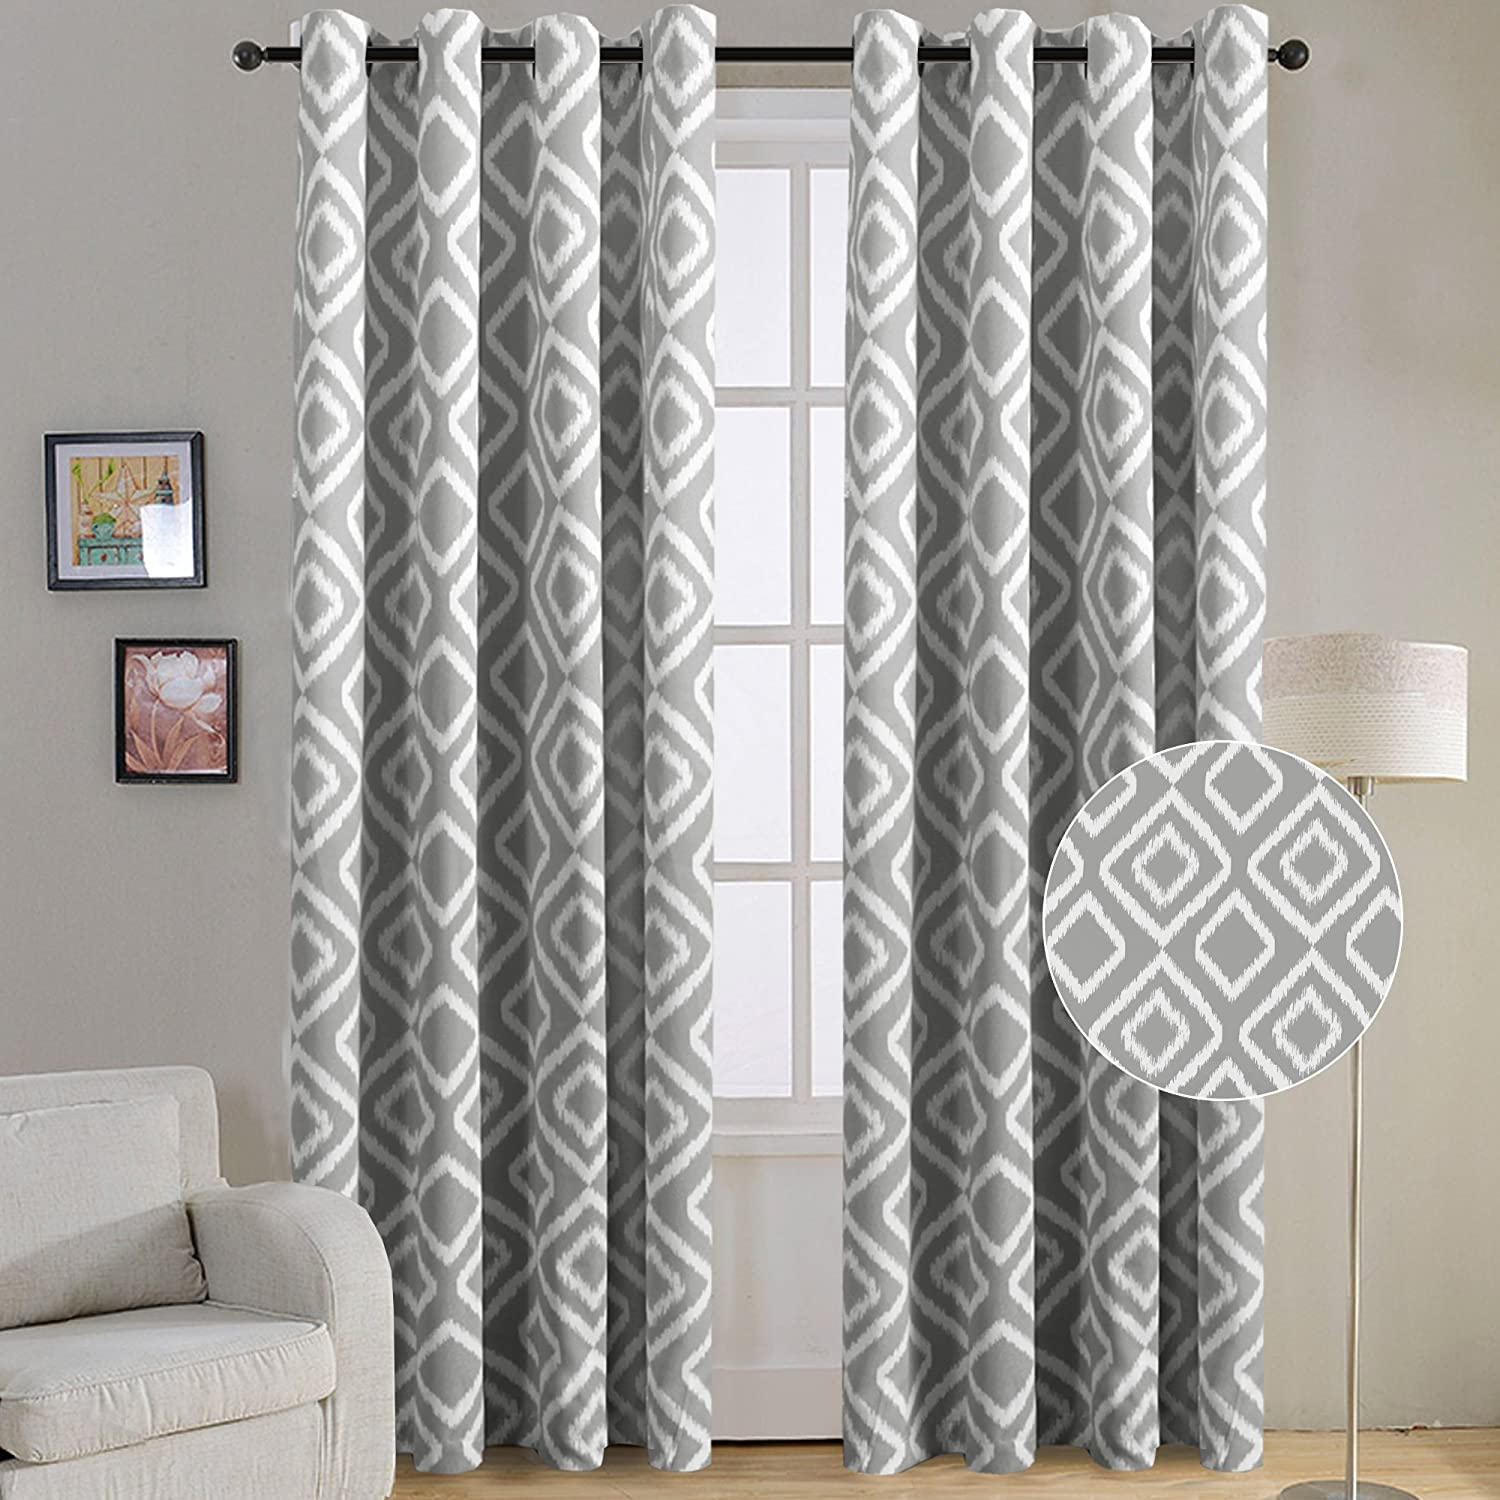 Blackout Curtains Panels for Bedroom by Flamingo P